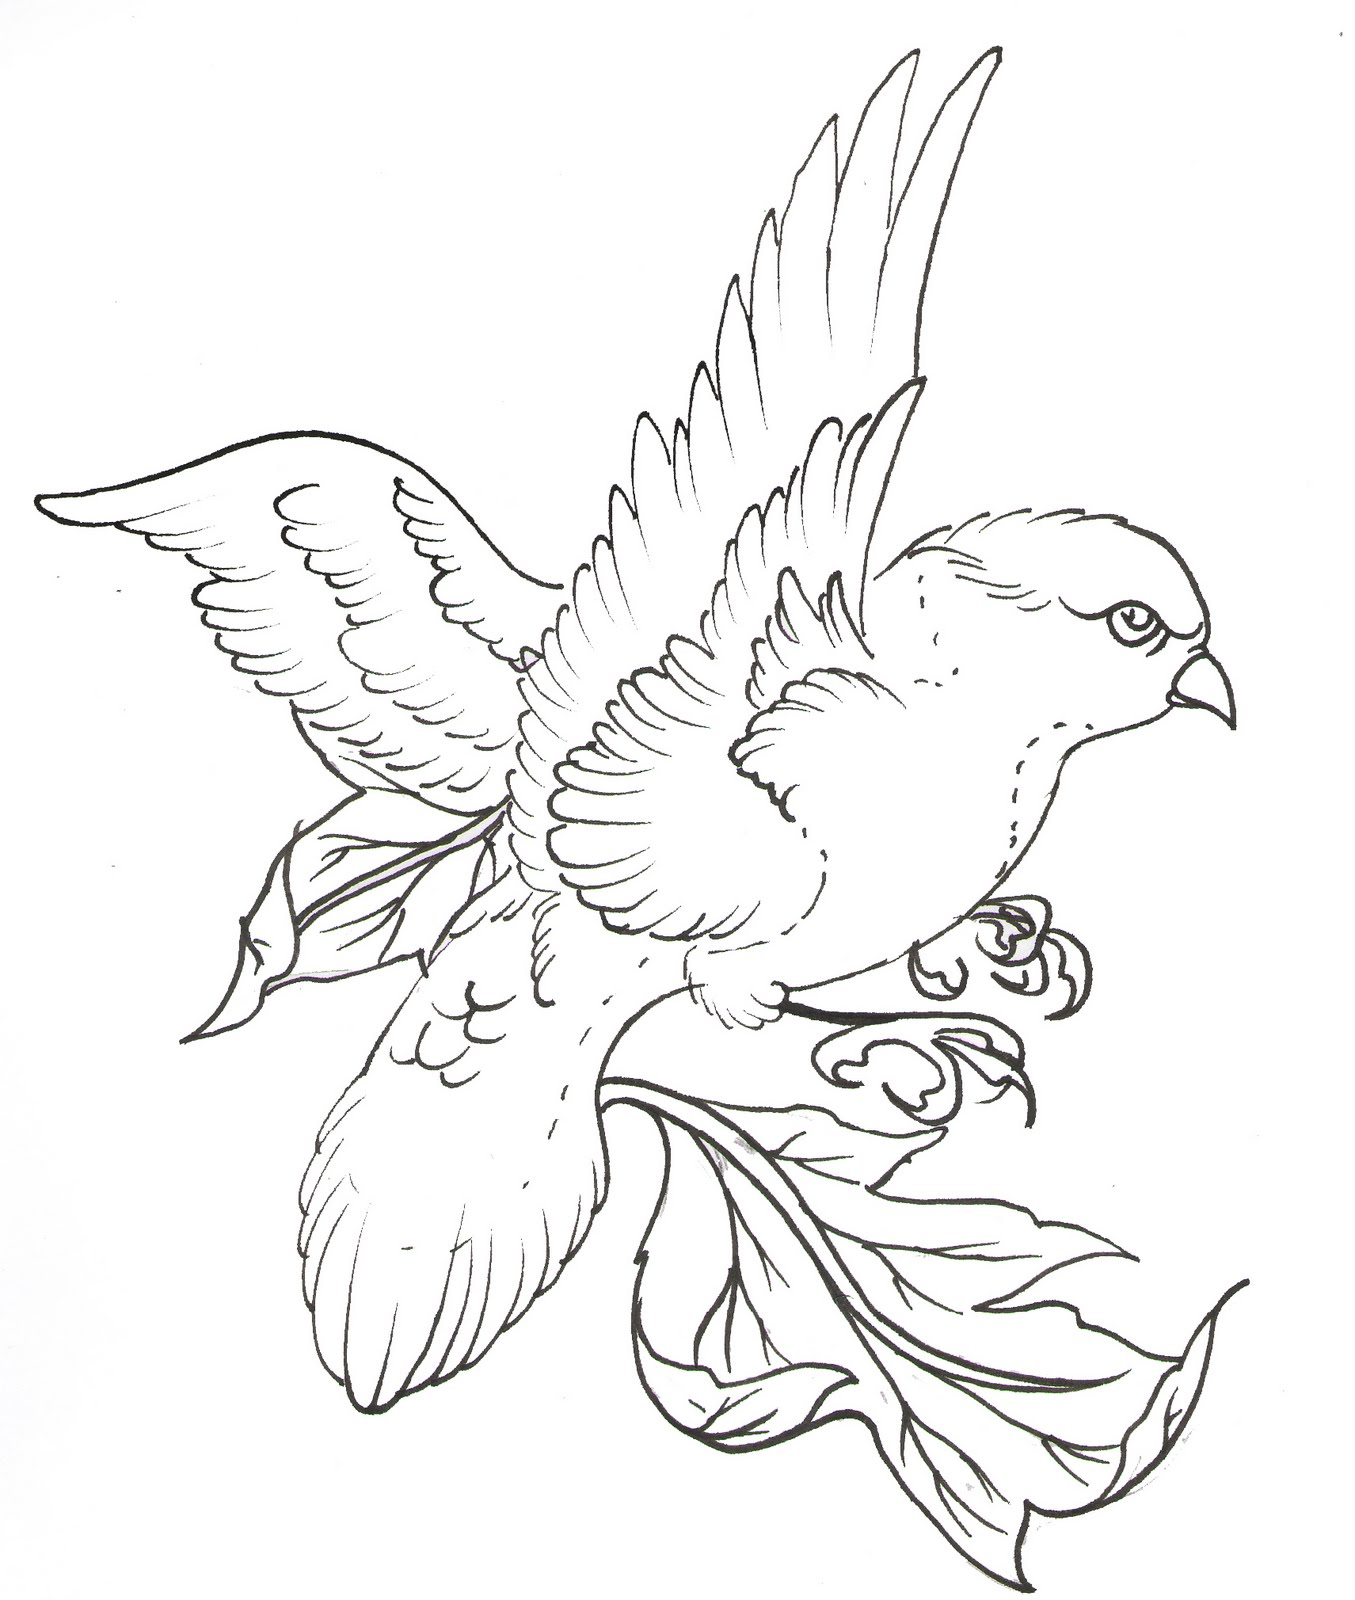 Line Drawing Tattoos Tumblr : Tattoo line drawing at getdrawings free for personal